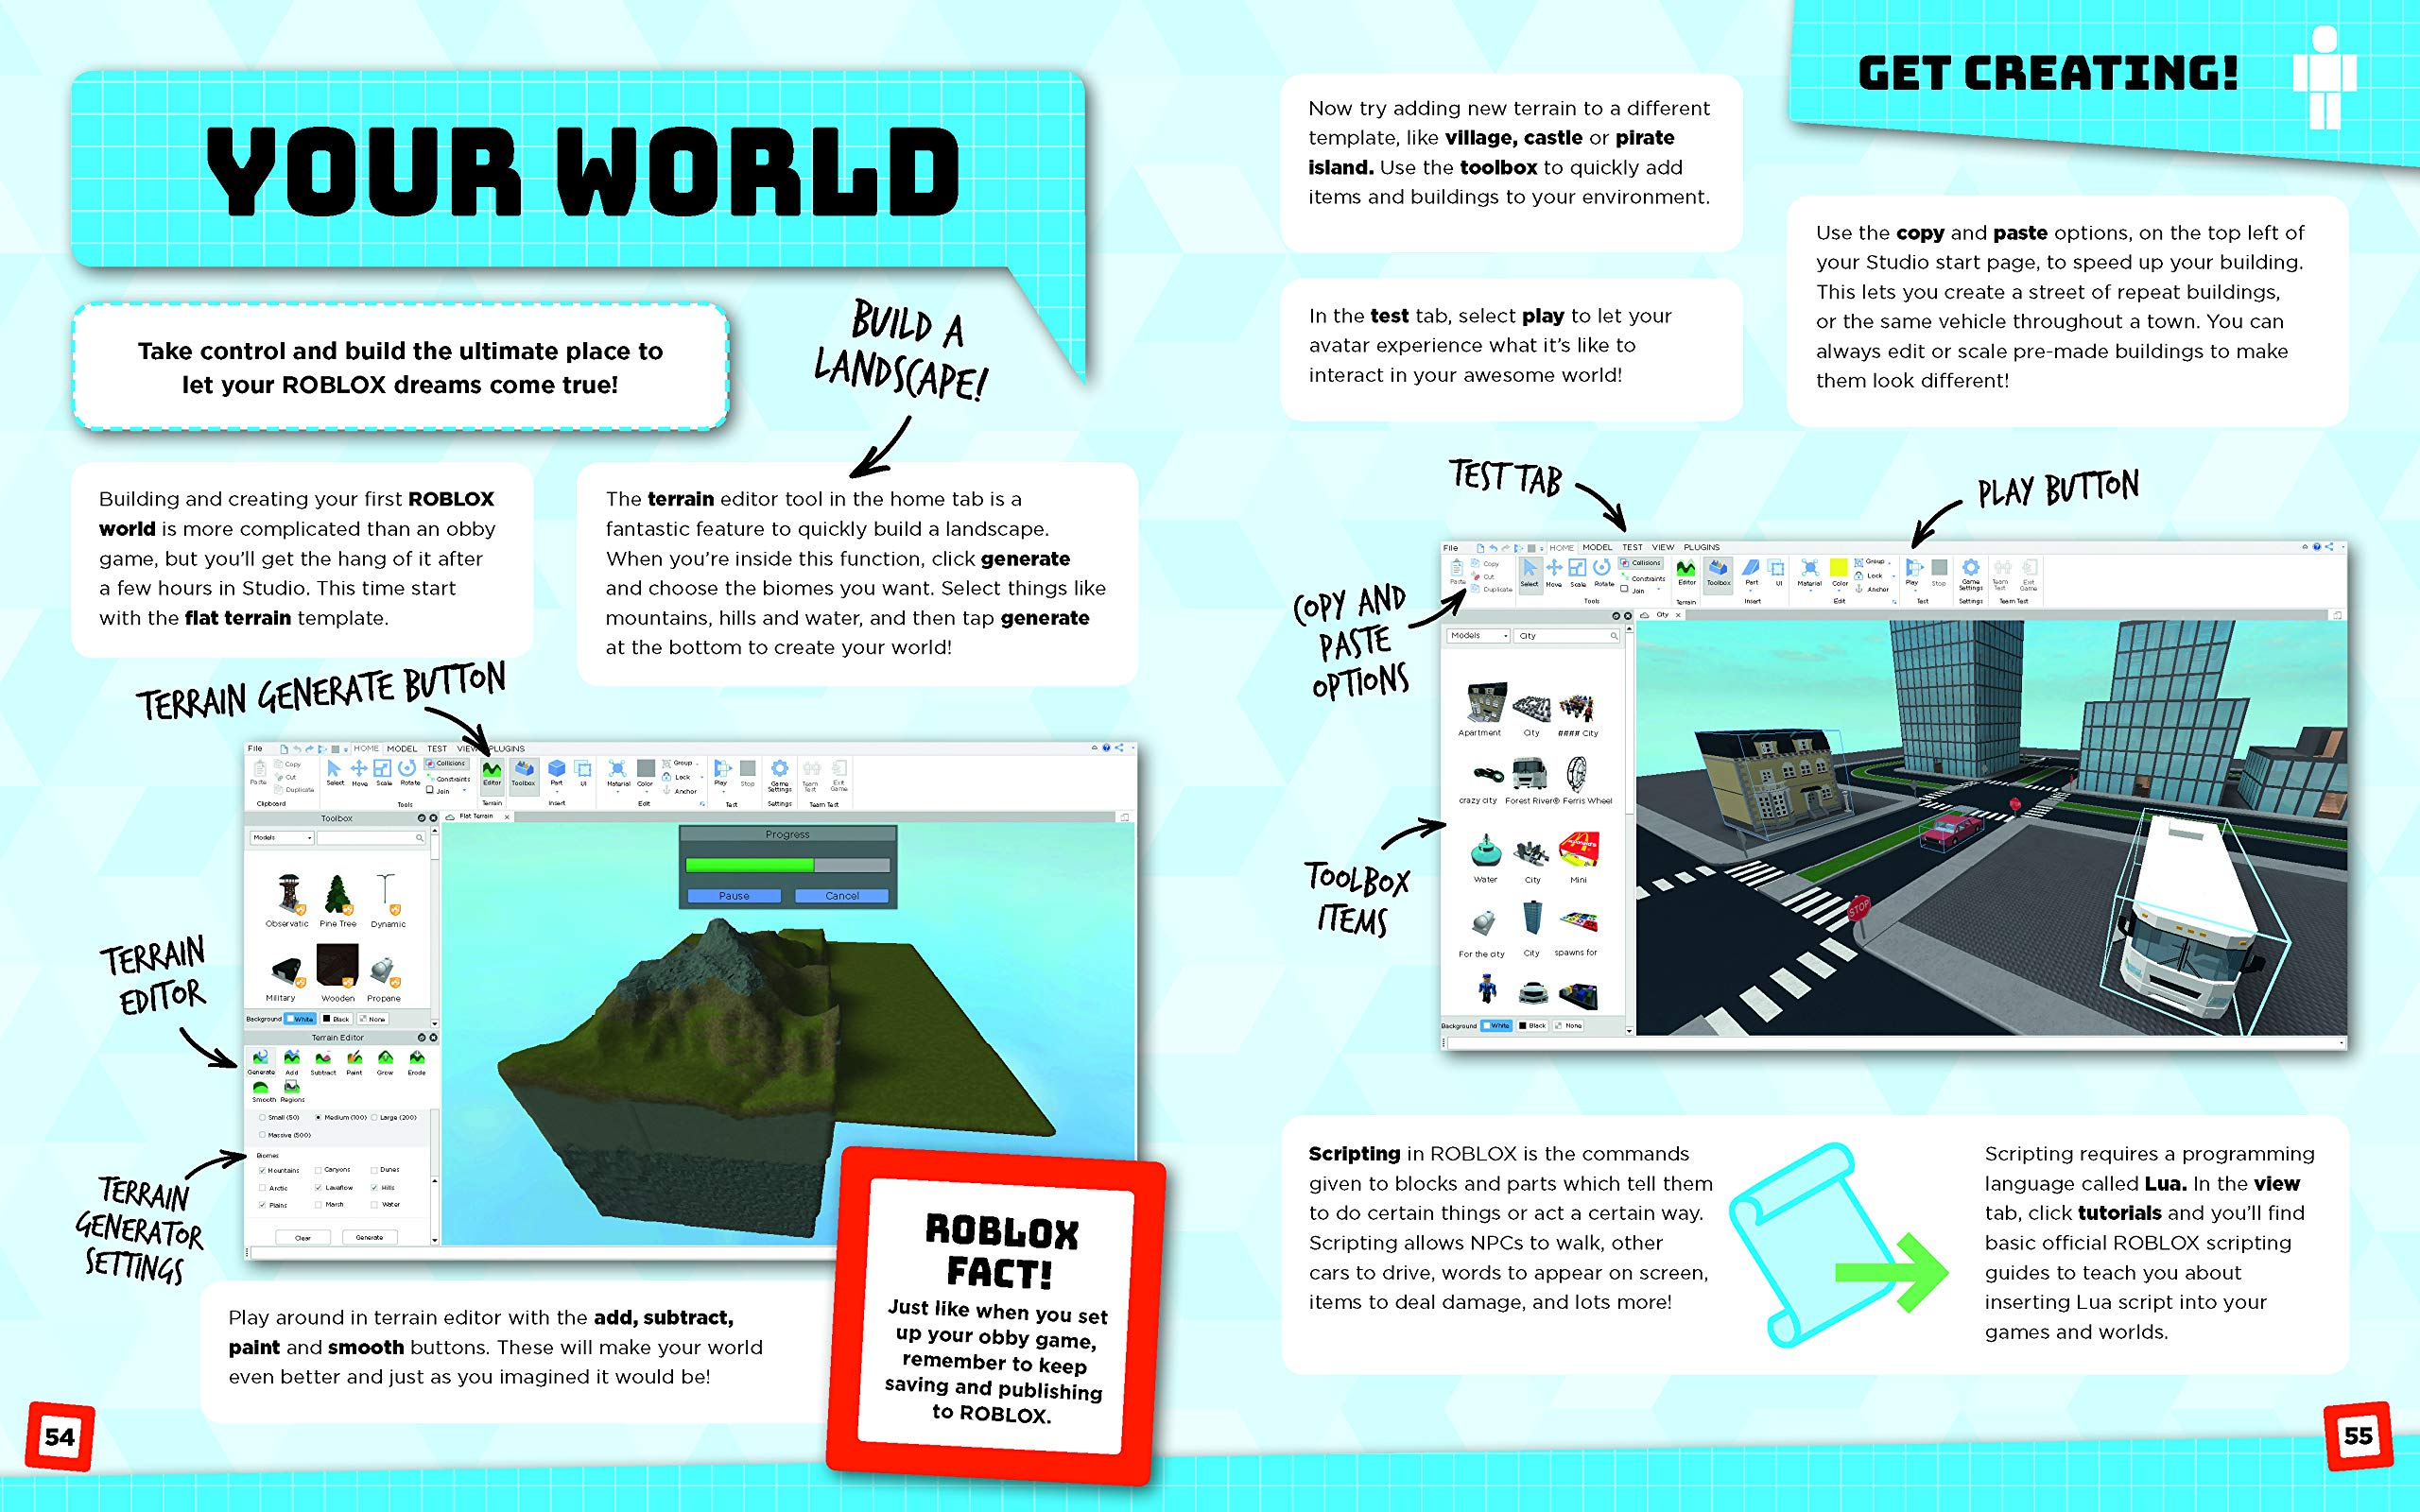 Roblox Master Gamers Guide The Ultimate Guide To Finding Making And Beating The Best Roblox Gamespaperback - Roblox Master Gamers Guide The Ultimate Guide To Finding